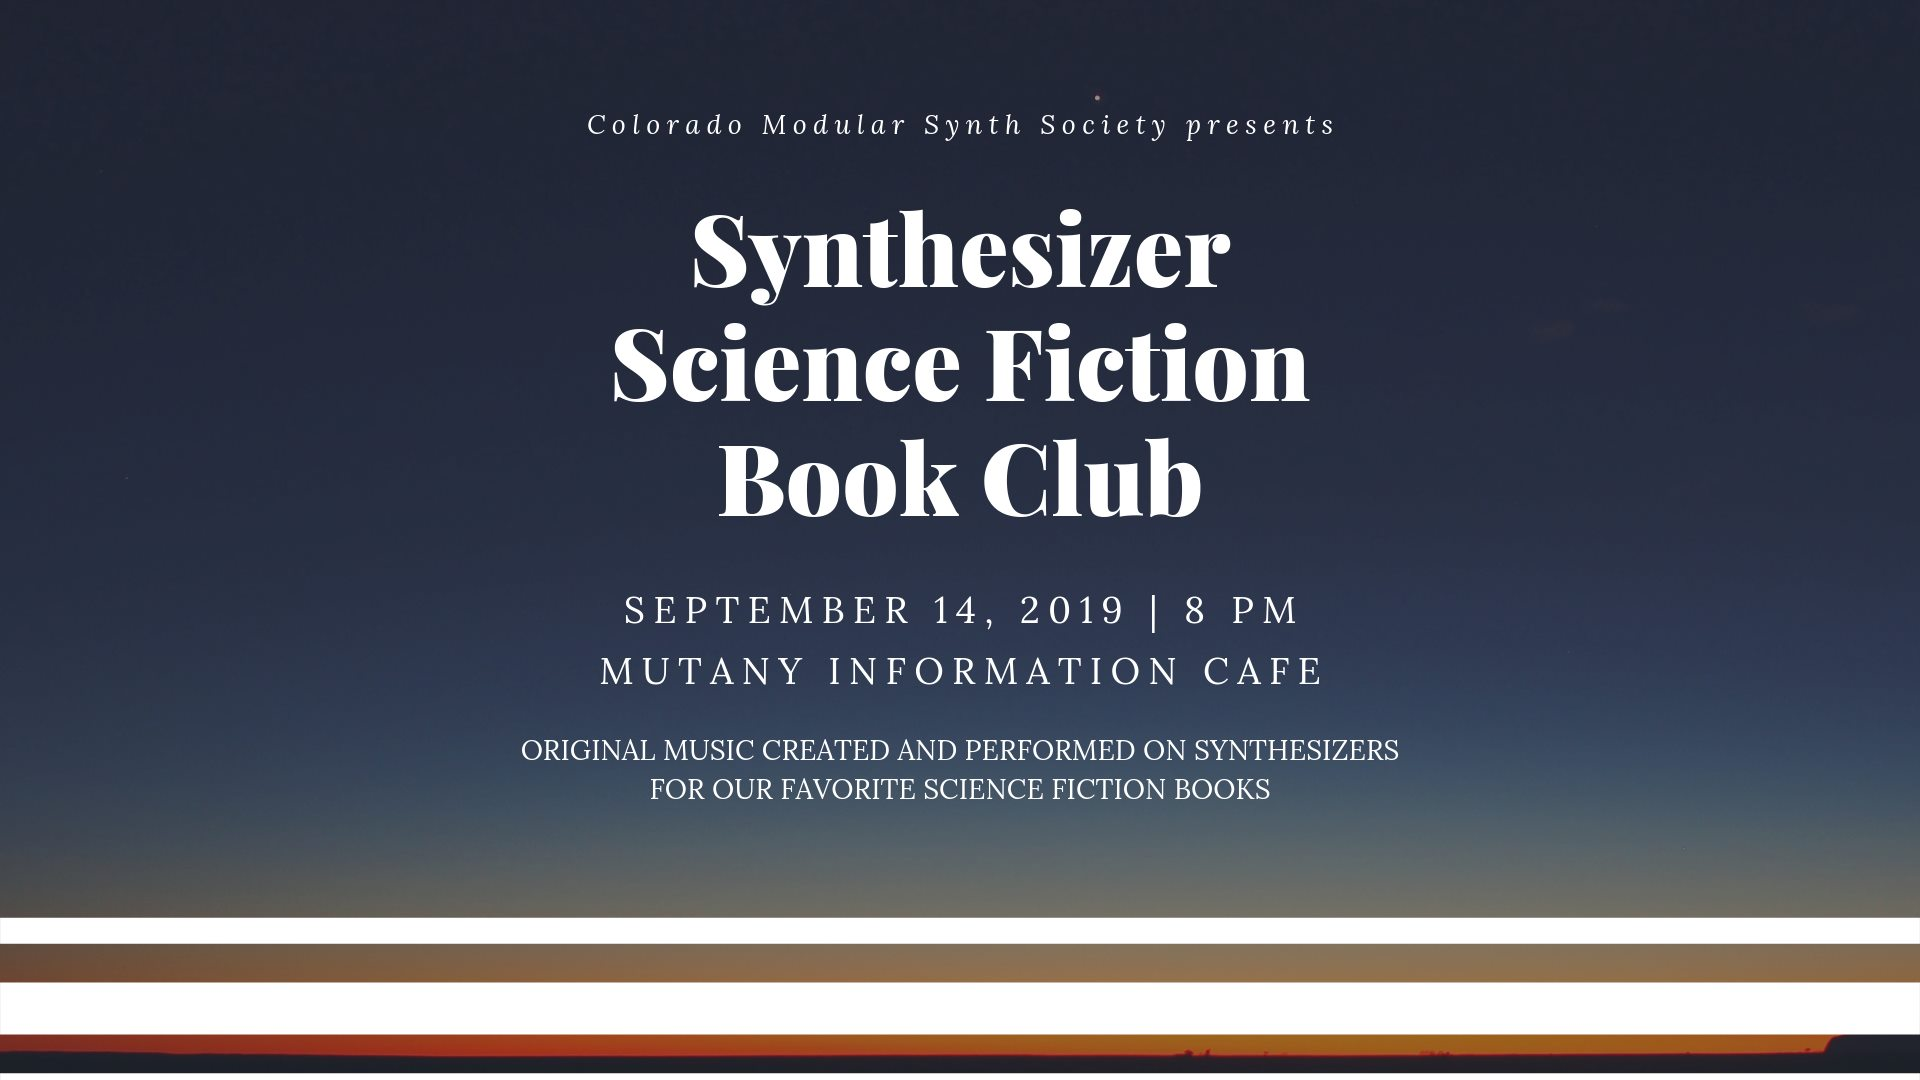 Synthesizer Science Fiction Book Club